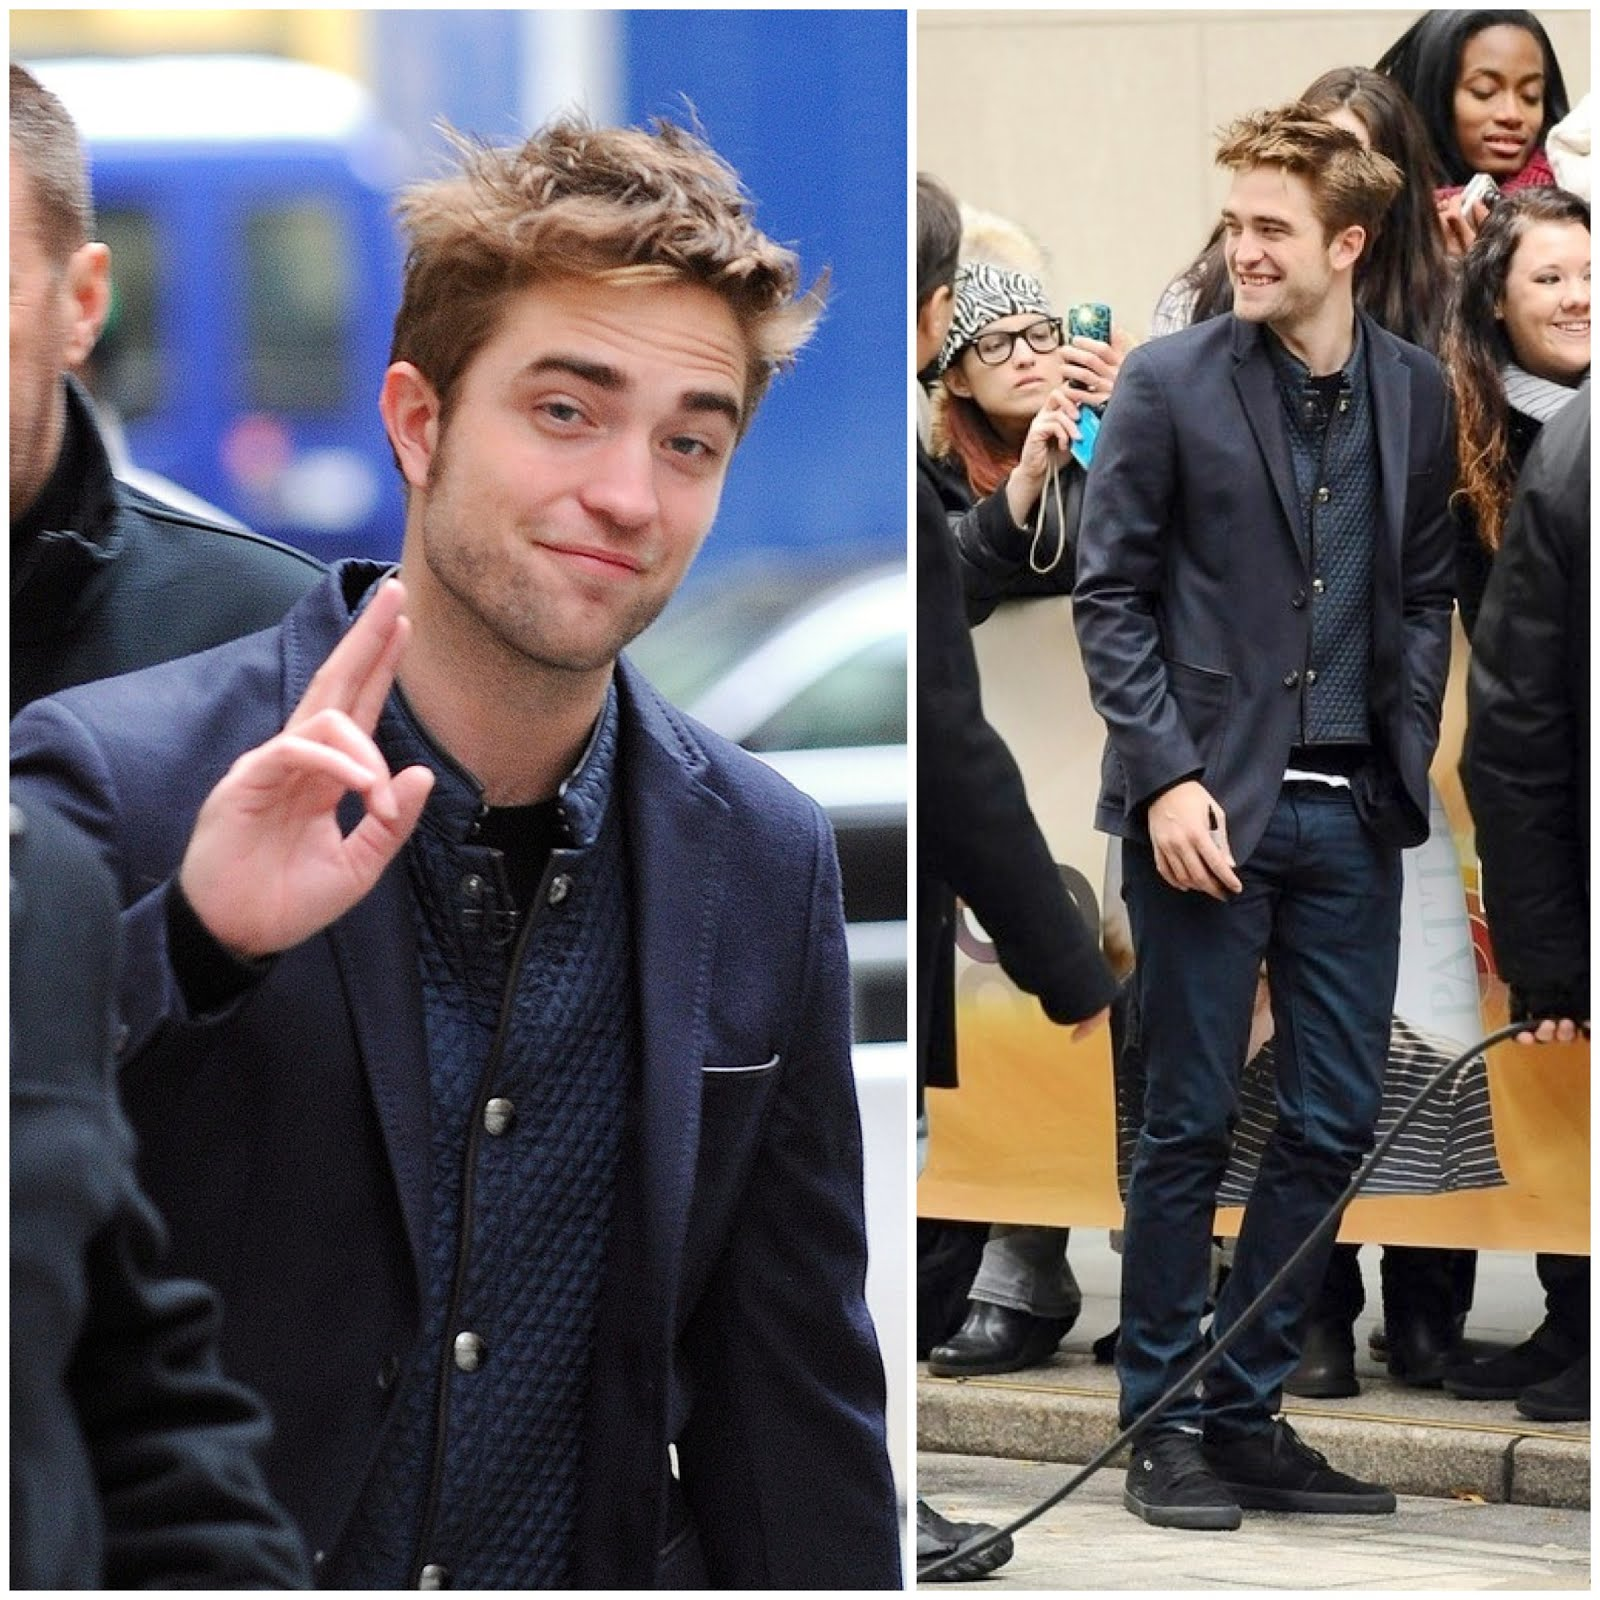 00O00 London Menswear Blog Celebrity Style Robert Pattinson steps out to greet fans before his NBC Today Show interview in Rockefeller Center Burberry London Jacket